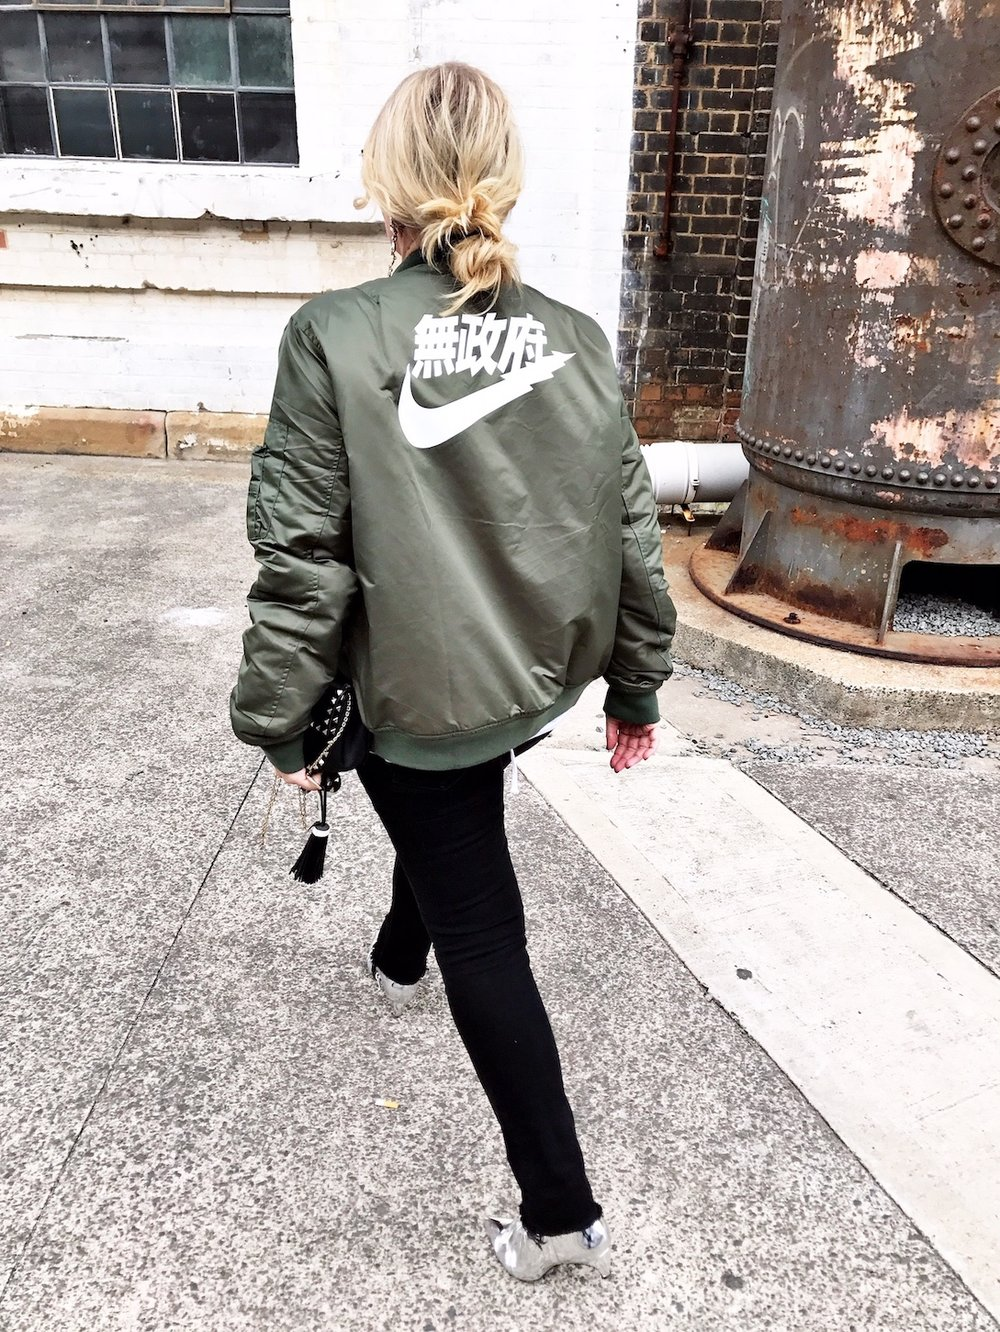 Streetwear-inspired thrifted outfit // A Week Of Designer-Inspired Salvation Army Finds With Faye De Lanty From Fashion Hound on The Good Trade